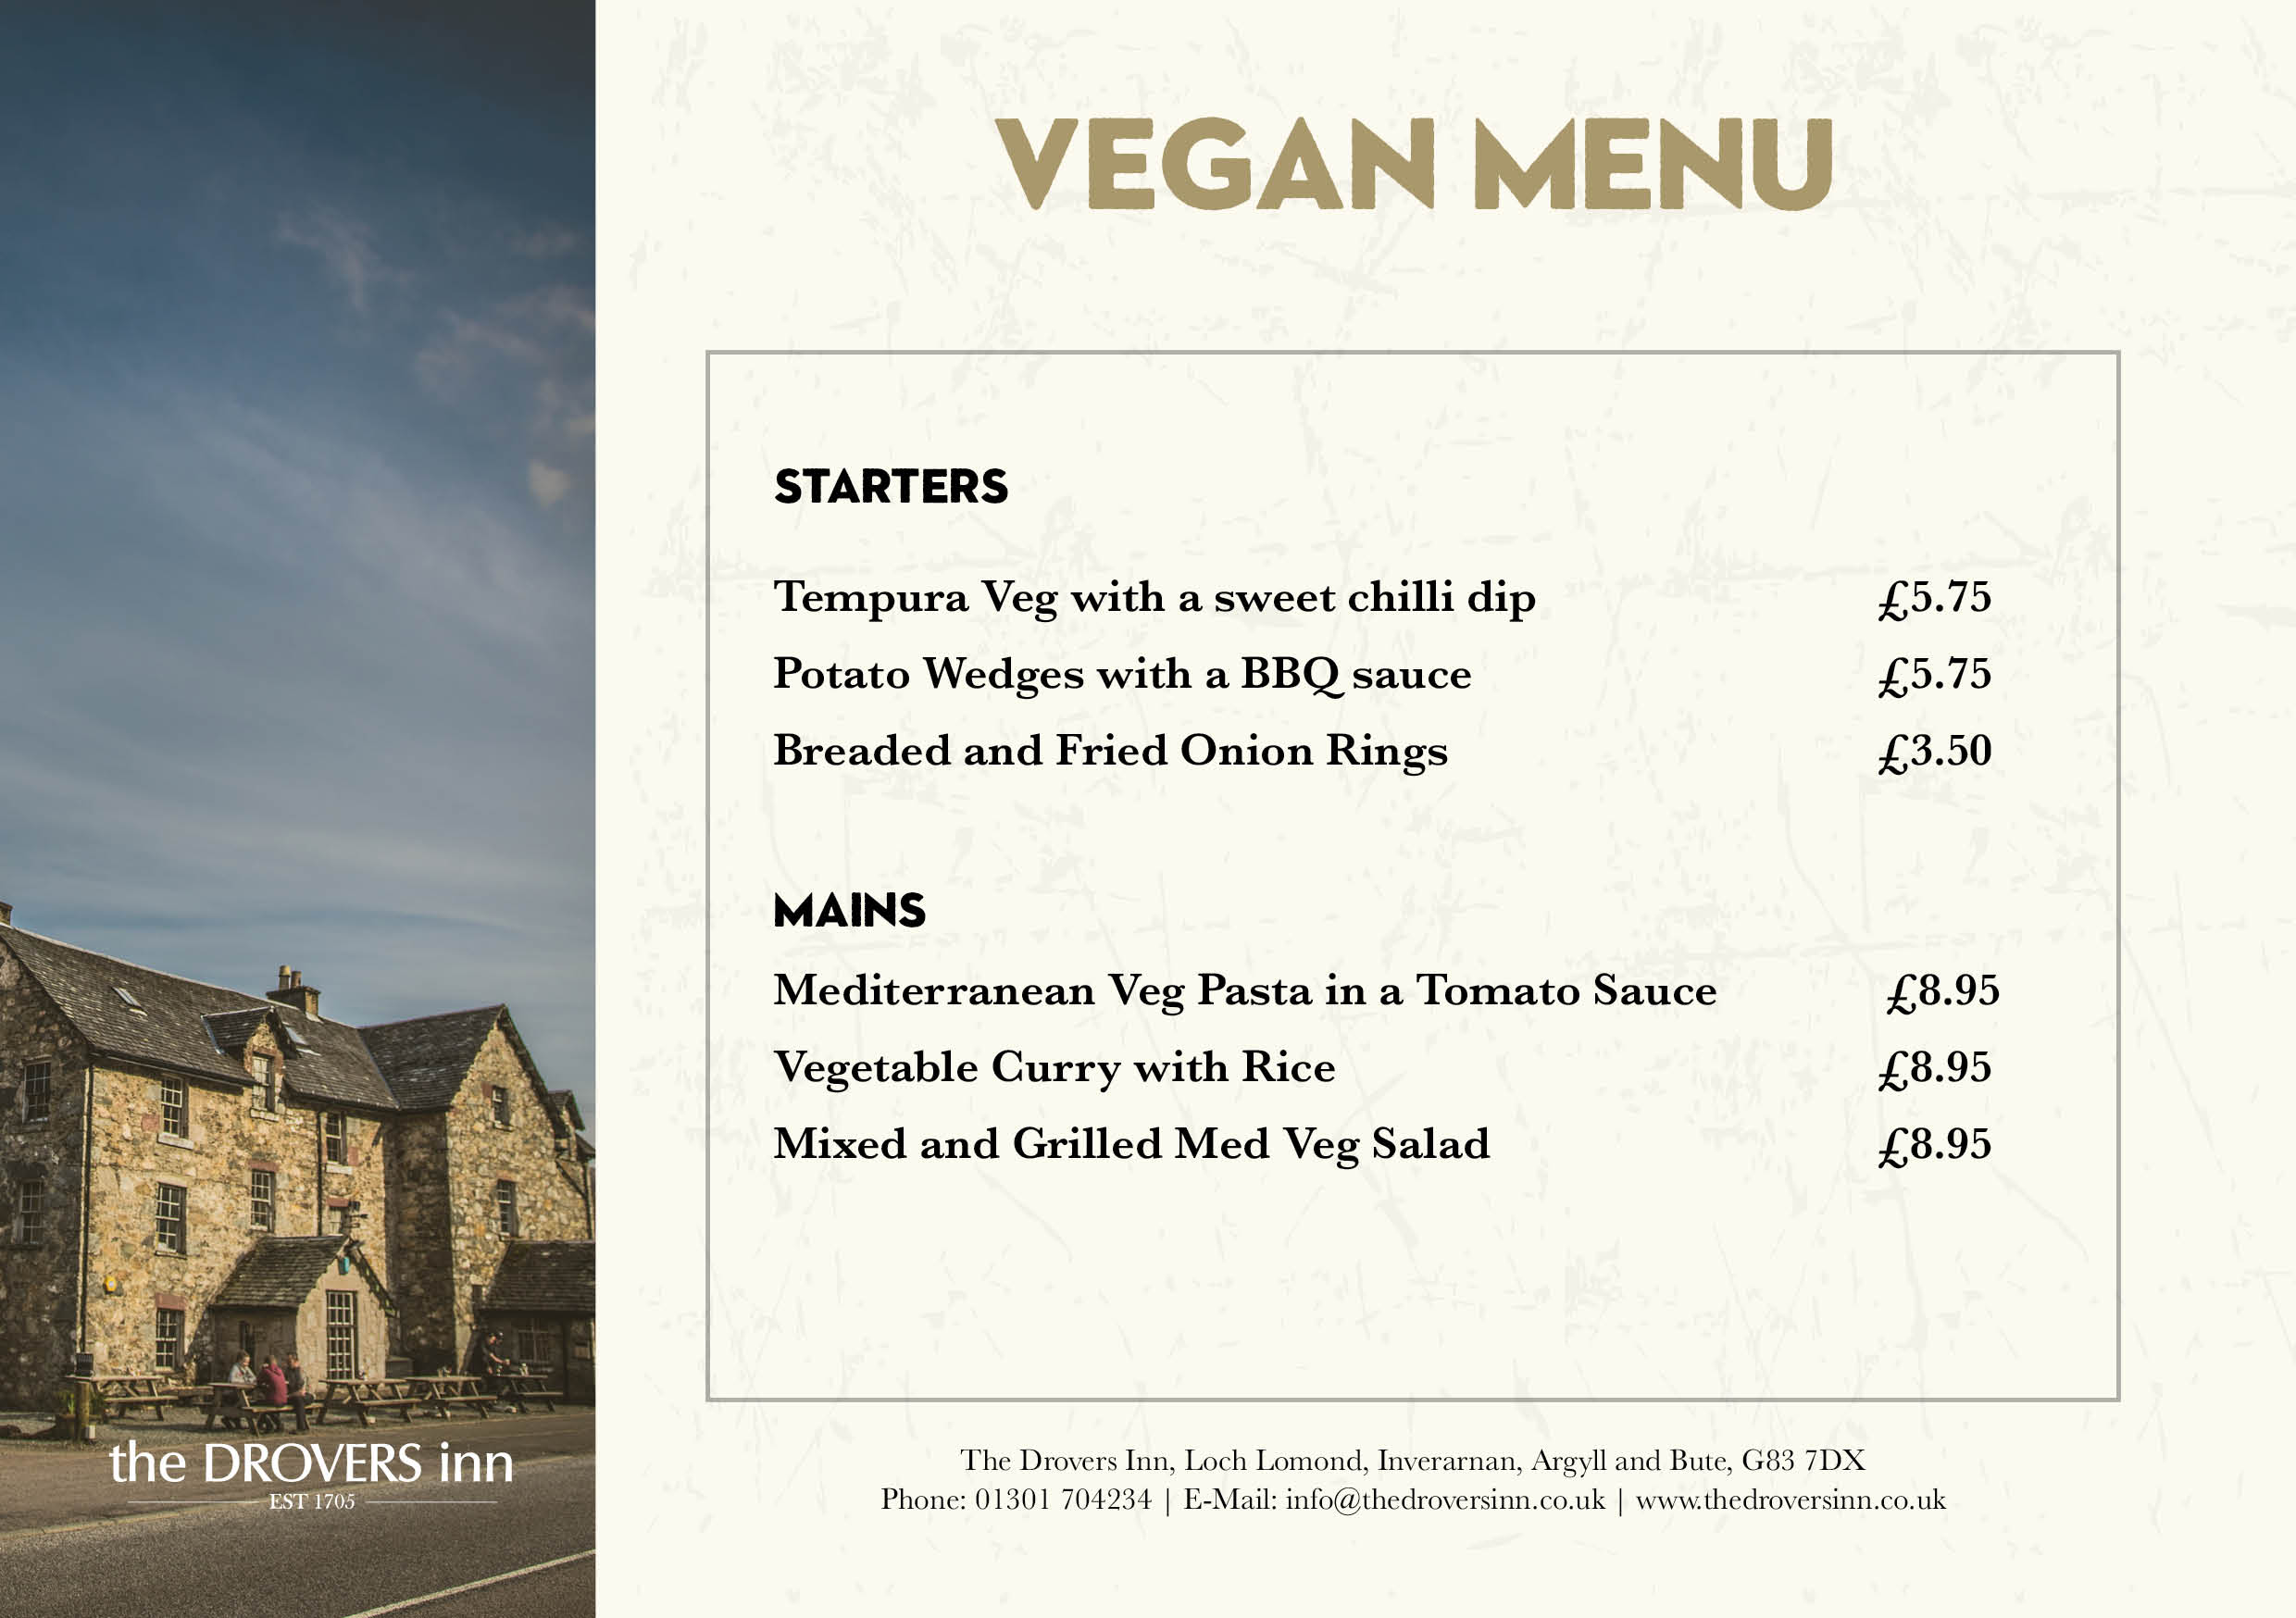 Drovers Inn Vegan Menu